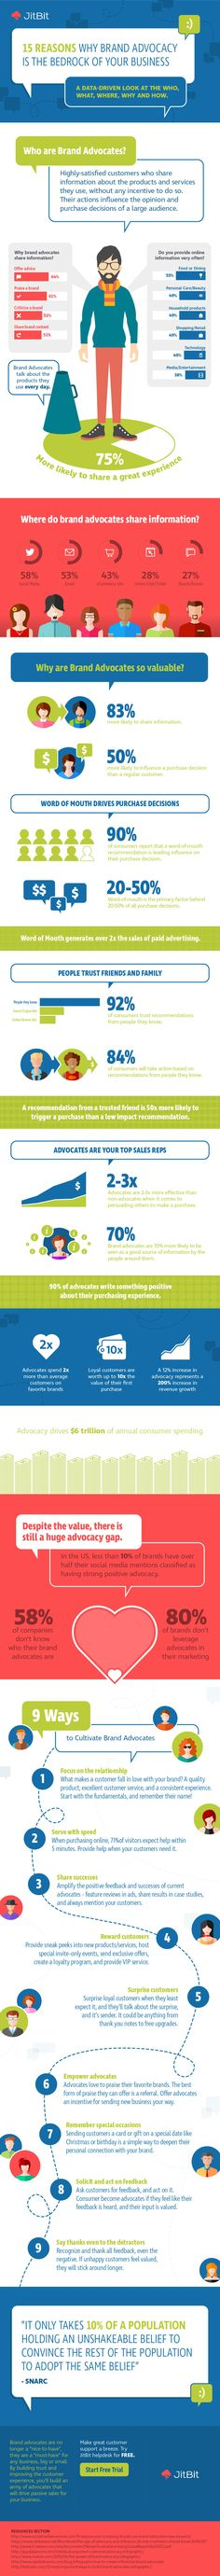 Brand advocates represent a major marketing opportunity - this infographic lays out some key data on advocacy and its potential.